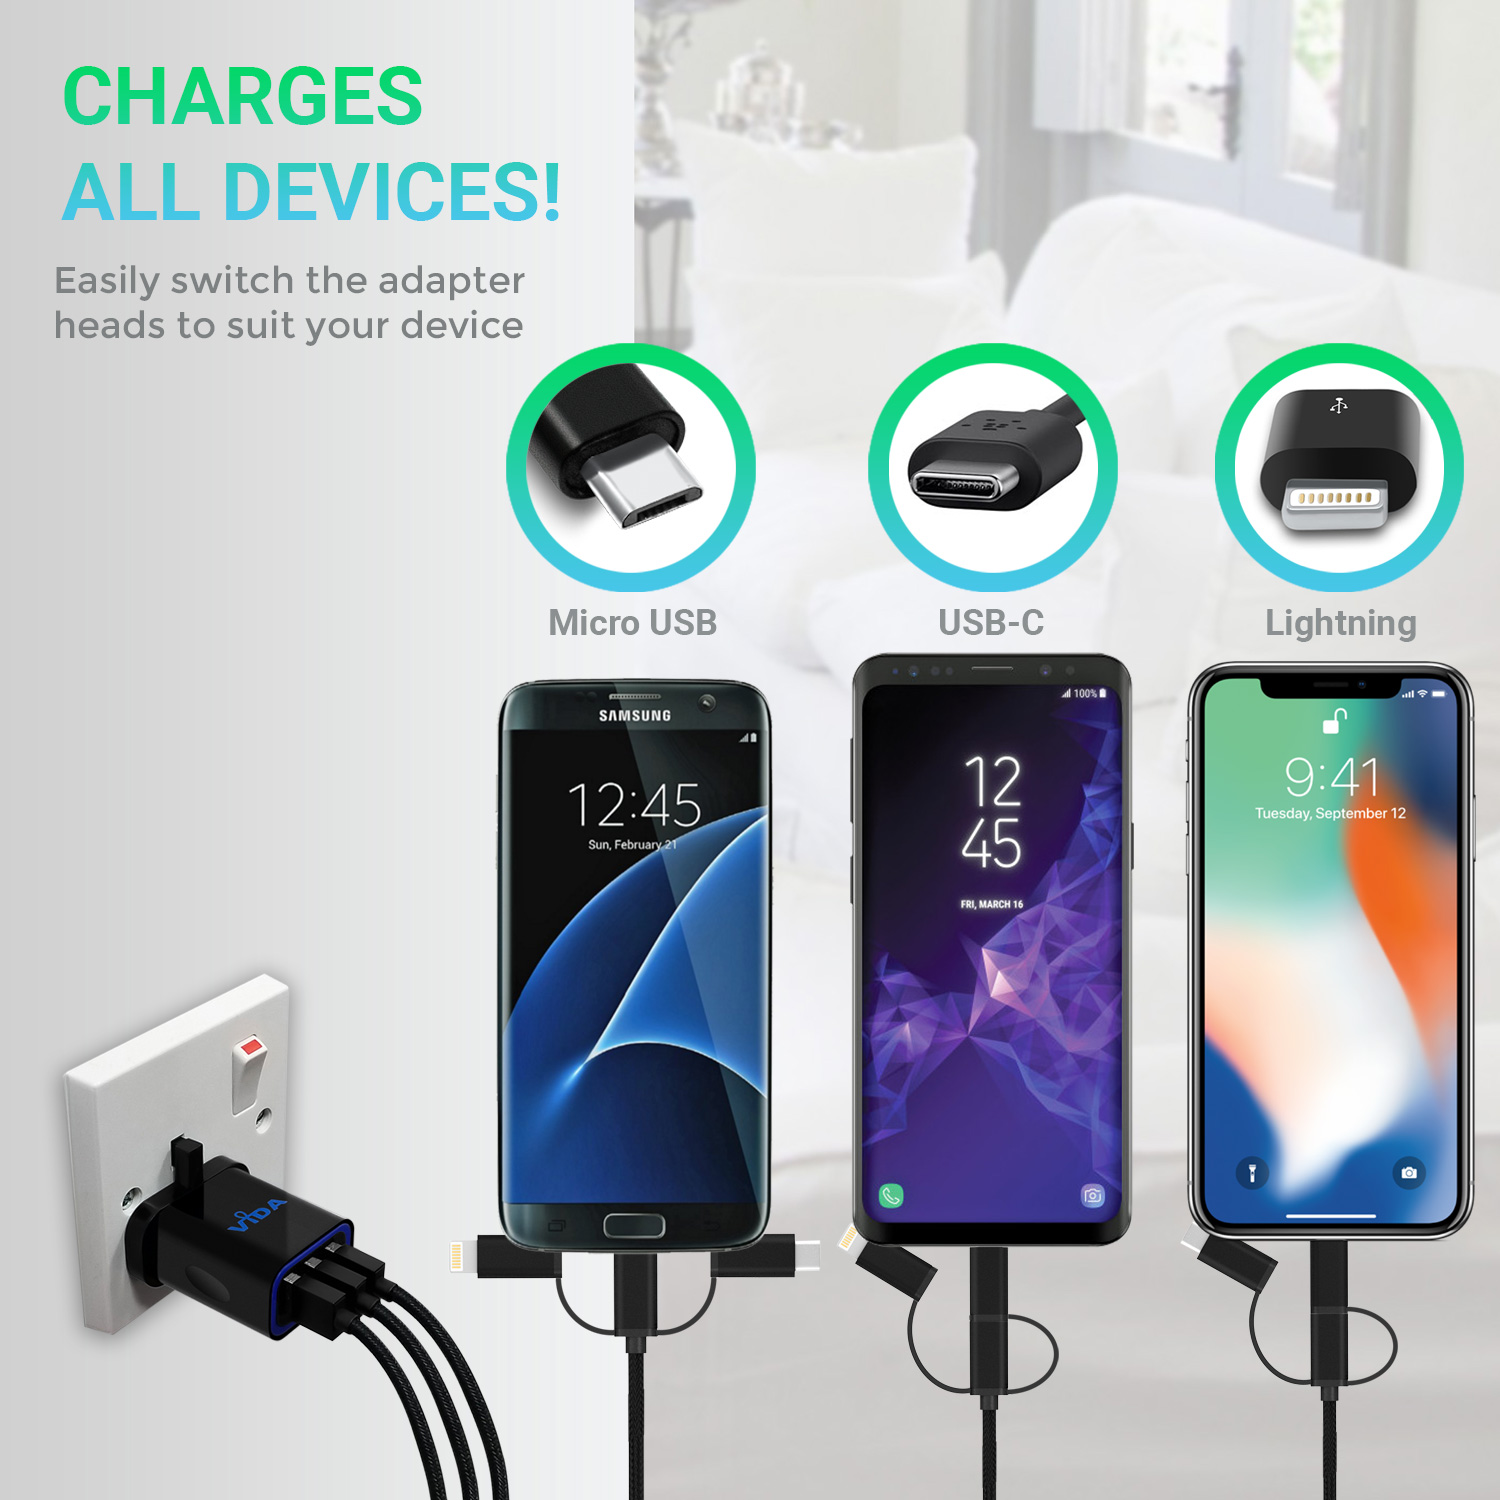 Tek Styz PRO OTG Power Cable Works for Kyocera Event with Power Connect Any Compatible USB Accessory with MicroUSB Cable!